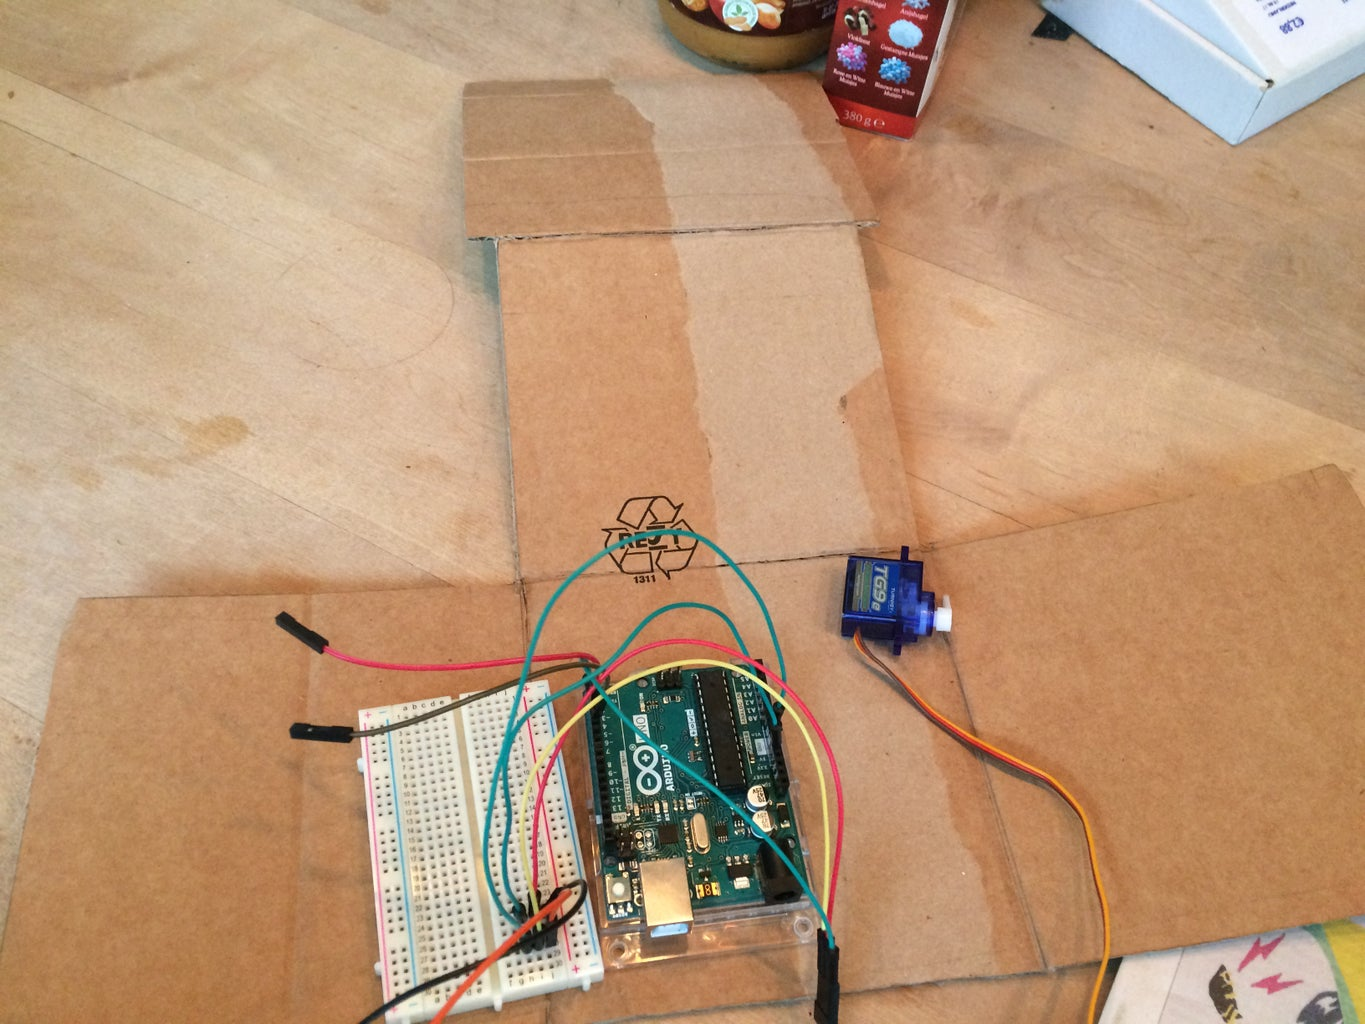 Wiring, Schematic and Code